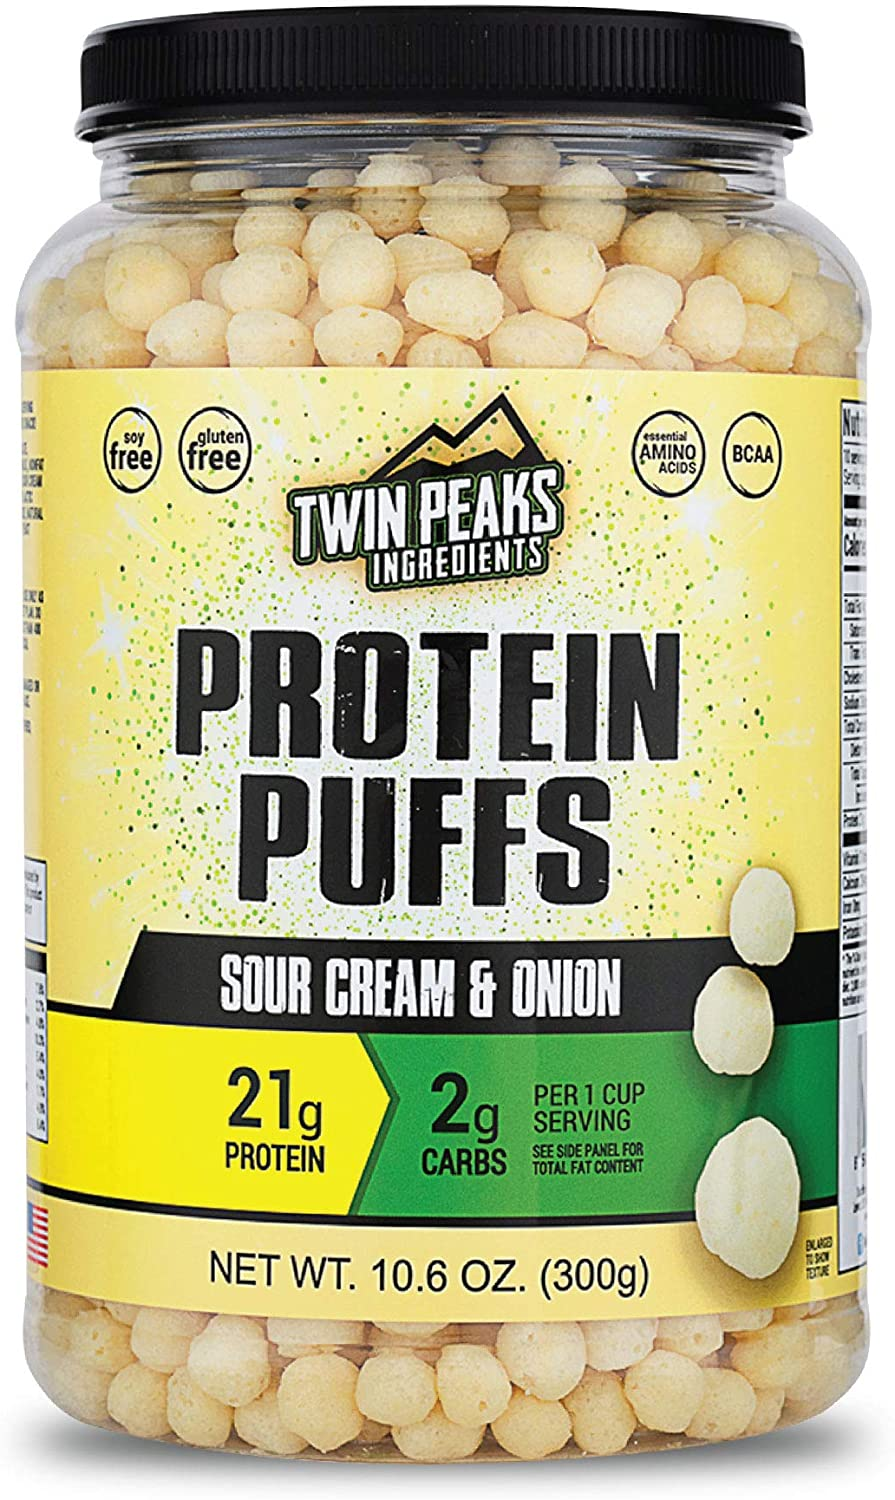 Twin Peaks Low Carb Keto Friendly Protein Puffs Sour Cream Onion